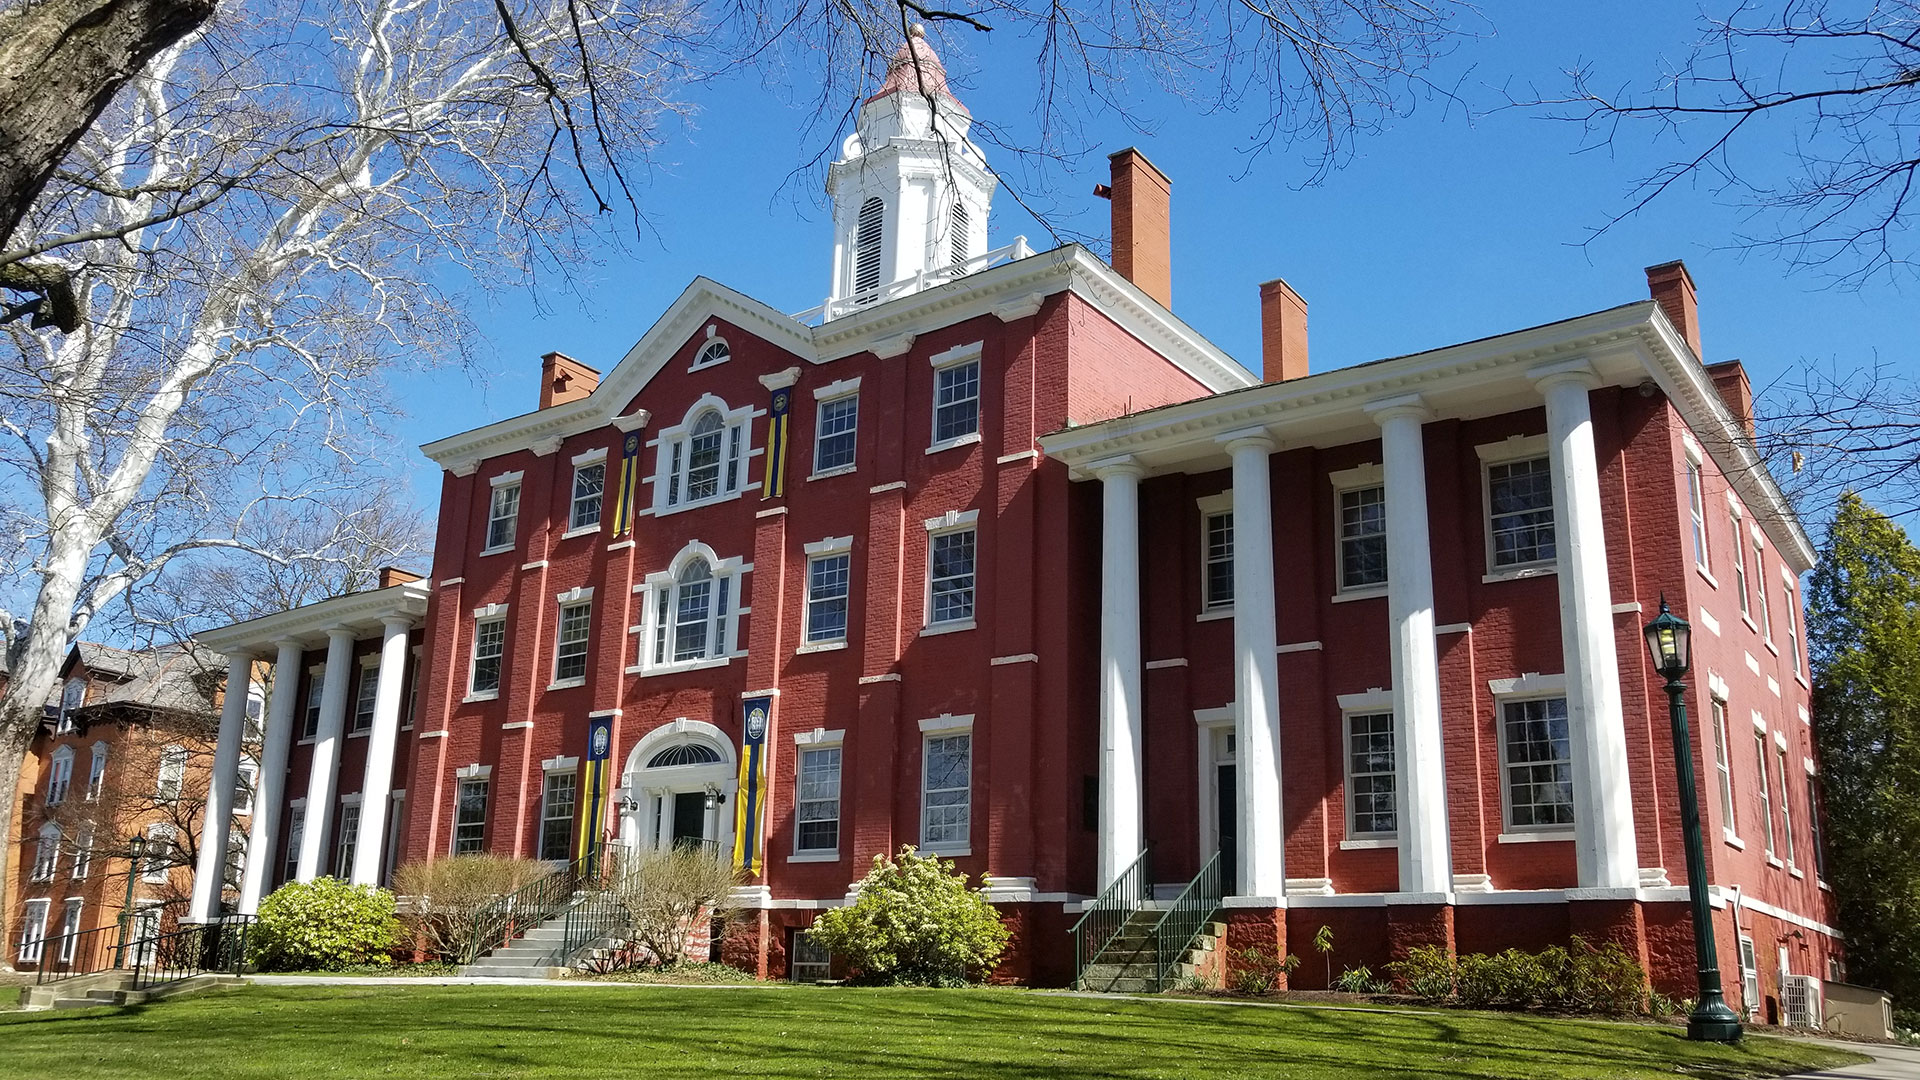 Bentley Hall at Allegheny College